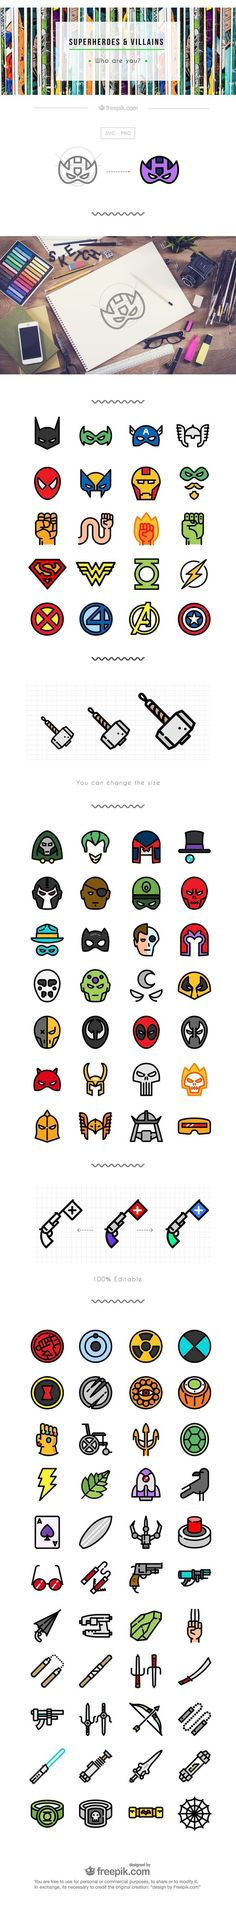 Freebie: The Flat Superheroes & Villains Icon Set (100 Icons, PNG & SVG) (6.3 MB) | speckyboy.com: